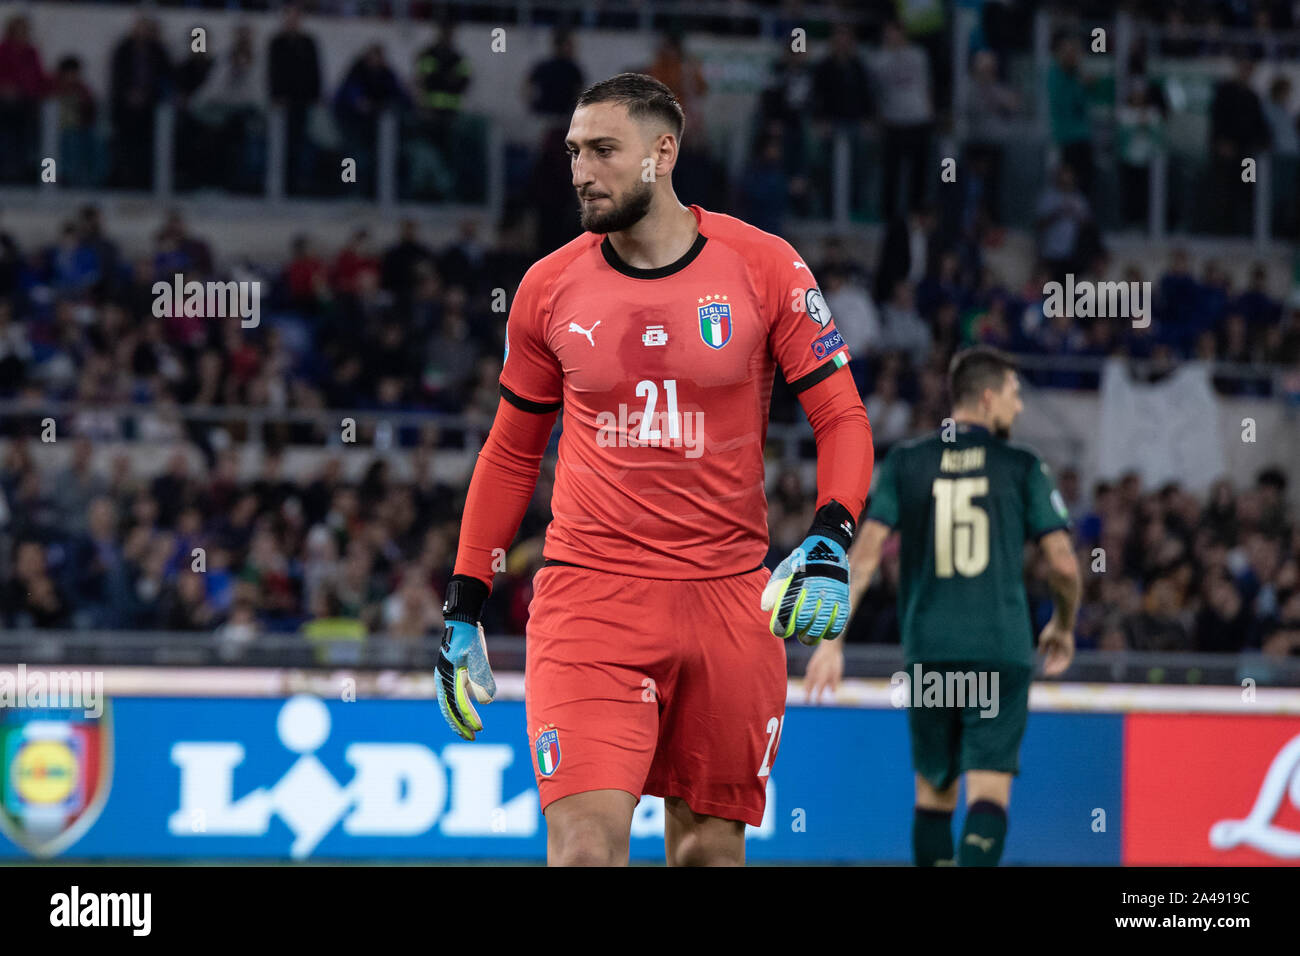 Rome Italy 12th Oct 2019 Gianluigi Donnarumma Of Italy Seen In Action During The Uefa Euro